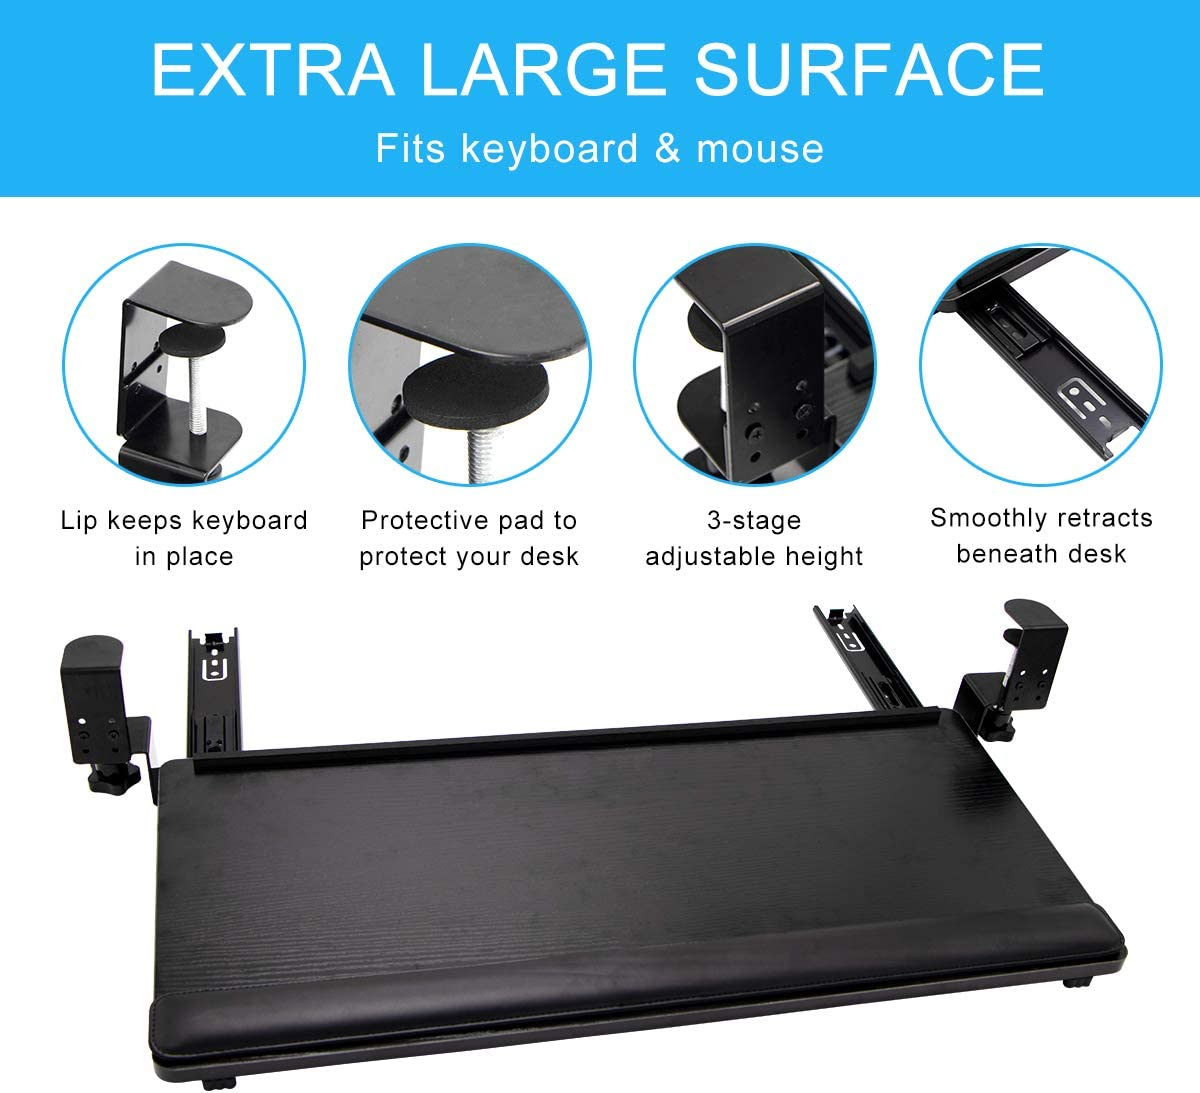 SLSY Large Keyboard Tray Under Desk Pull Out Ergonomic Keyboard Drawer with Keyboard Wrist Rest Clamp On Retractable Adjustable Computer Keyboard Mouse Platform Tray Shelf